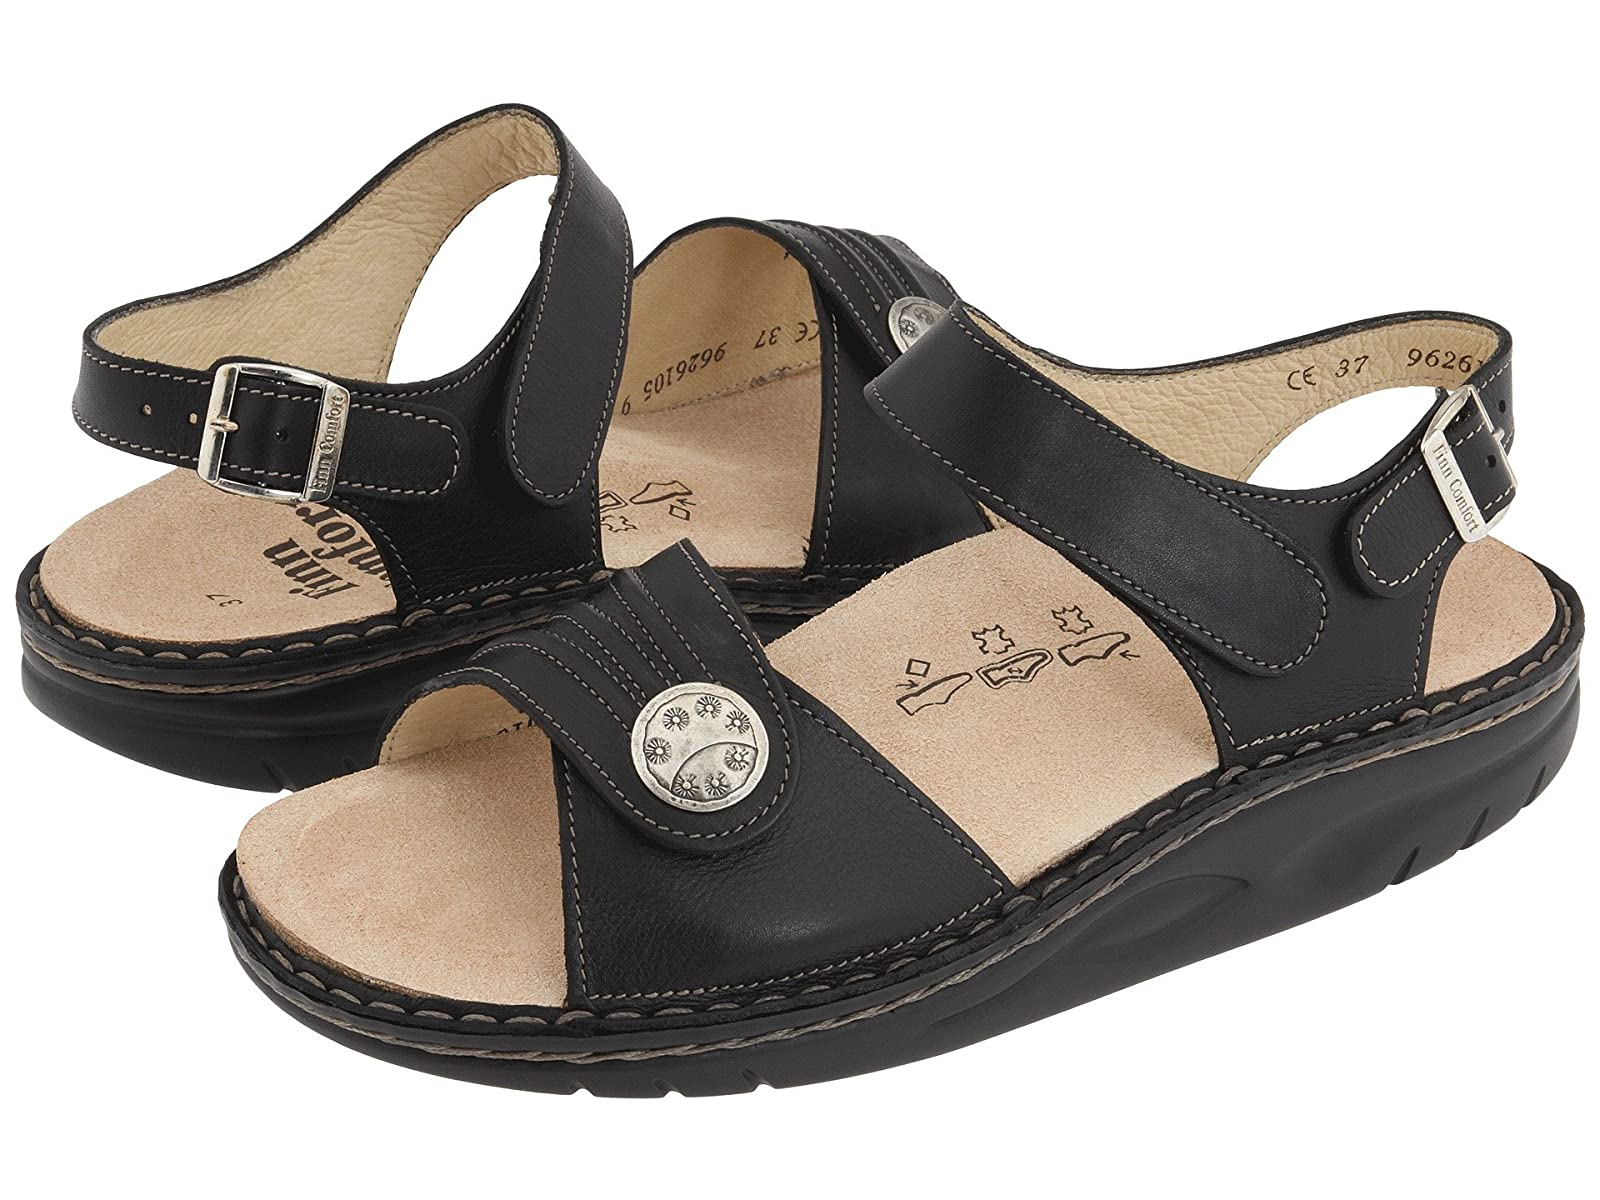 Finn Comfort Sausalito - 1572Atmospheric grades have affordable shoes